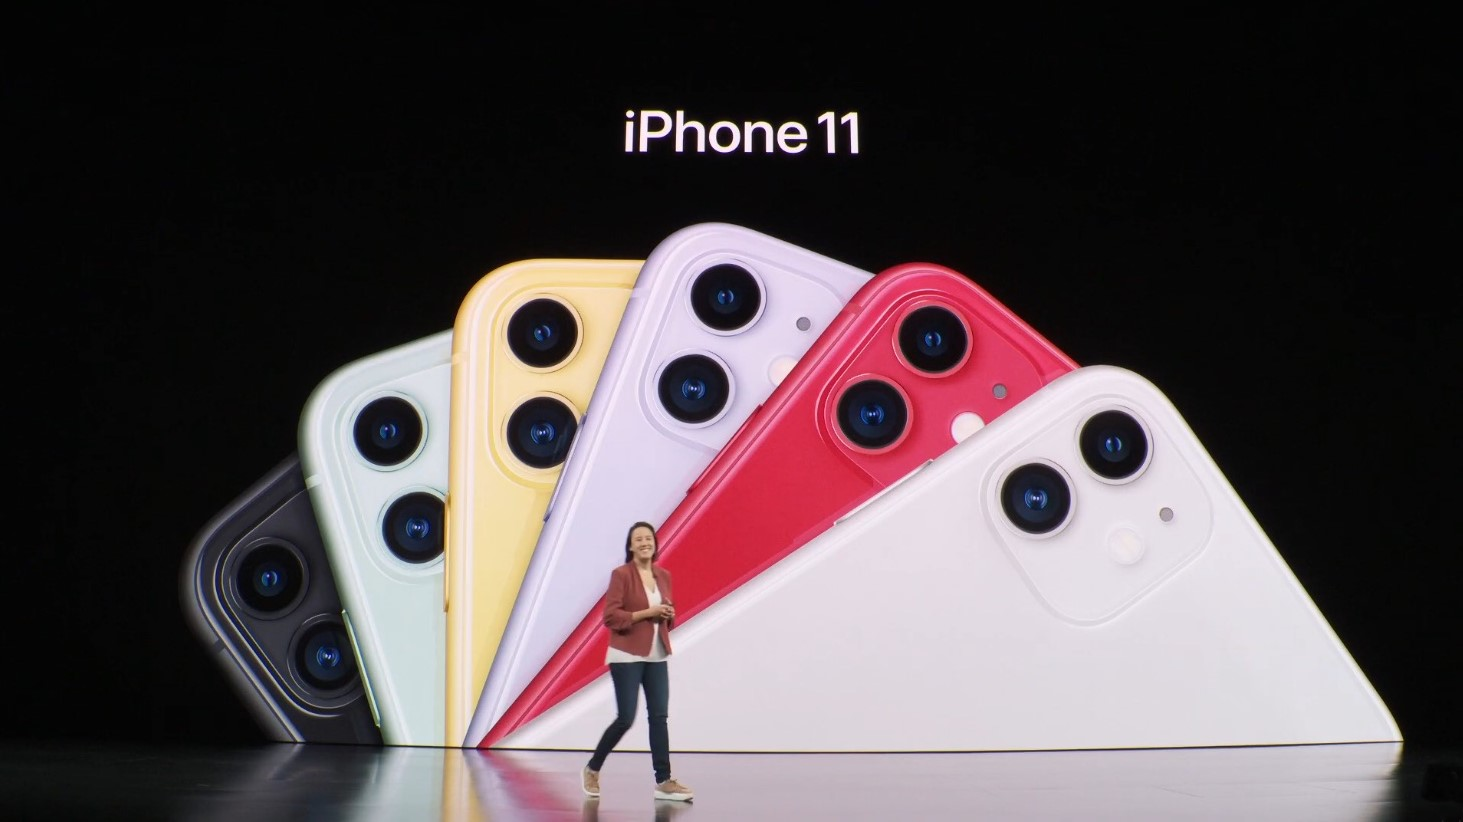 The new Apple Event was held this past month where creators showed new additions to the company and upgrades.